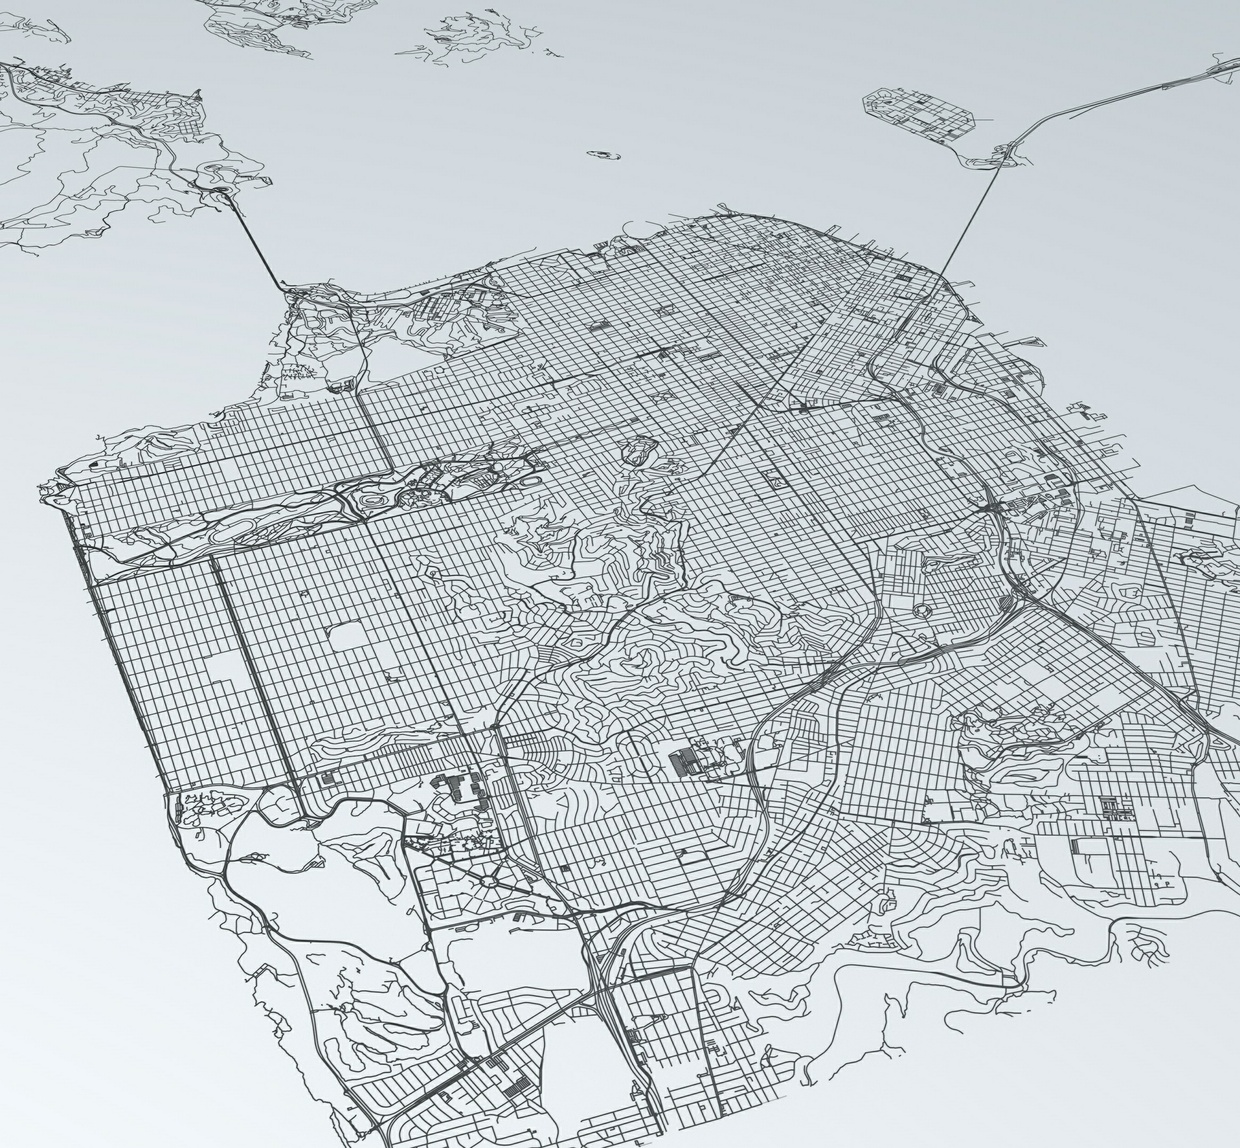 San Francisco Road Network Architectural 3D Model